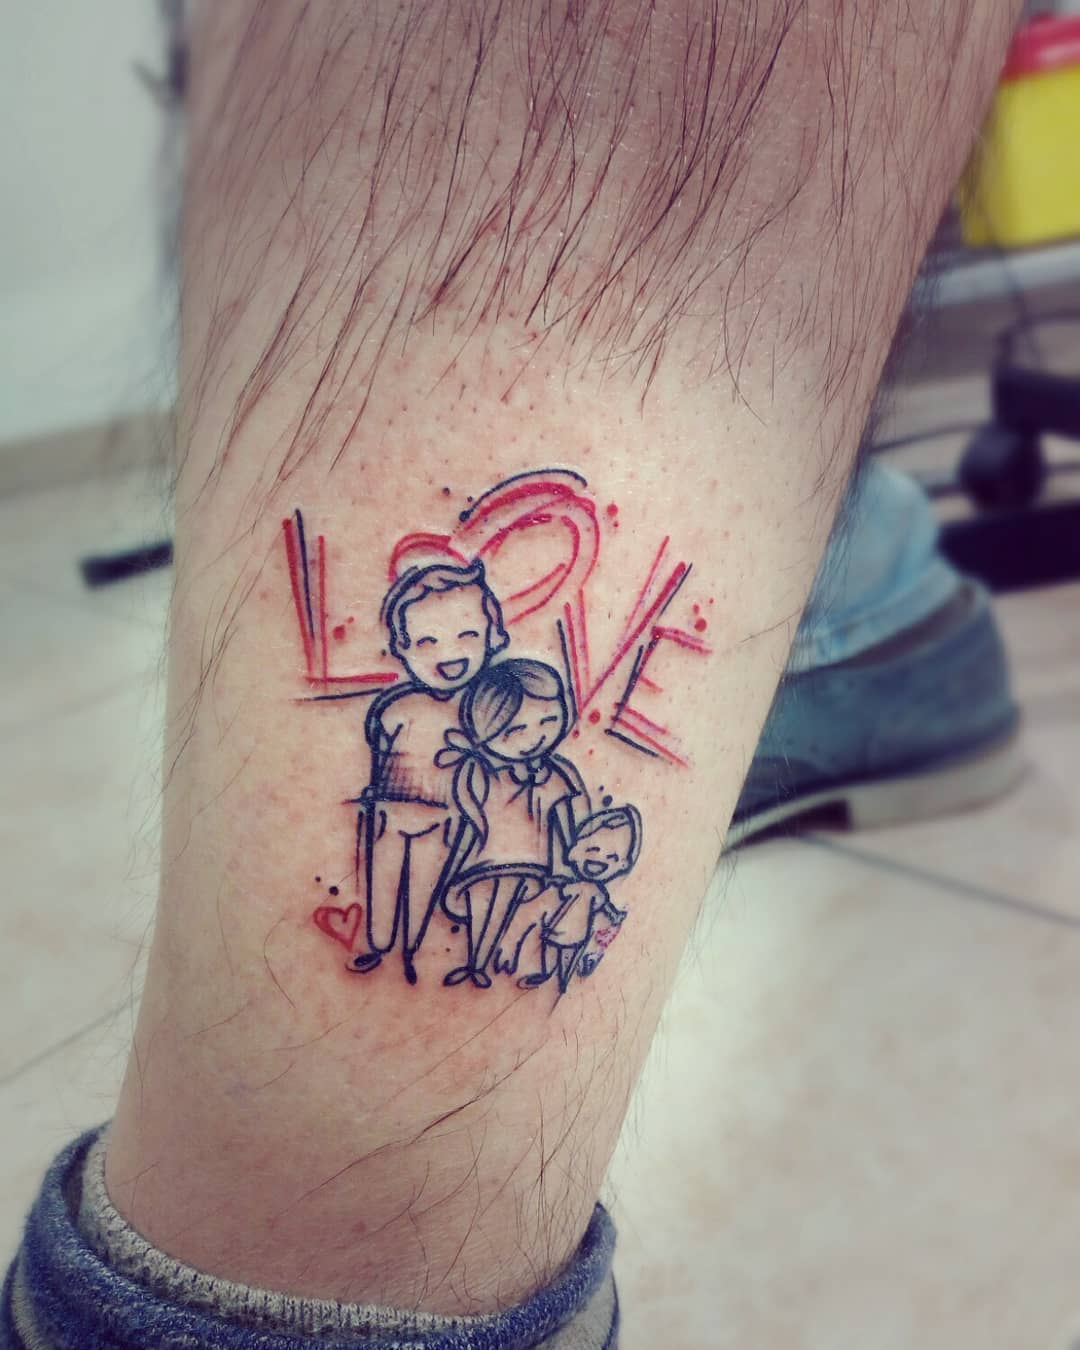 Sketch of a tattoo - Love of the family